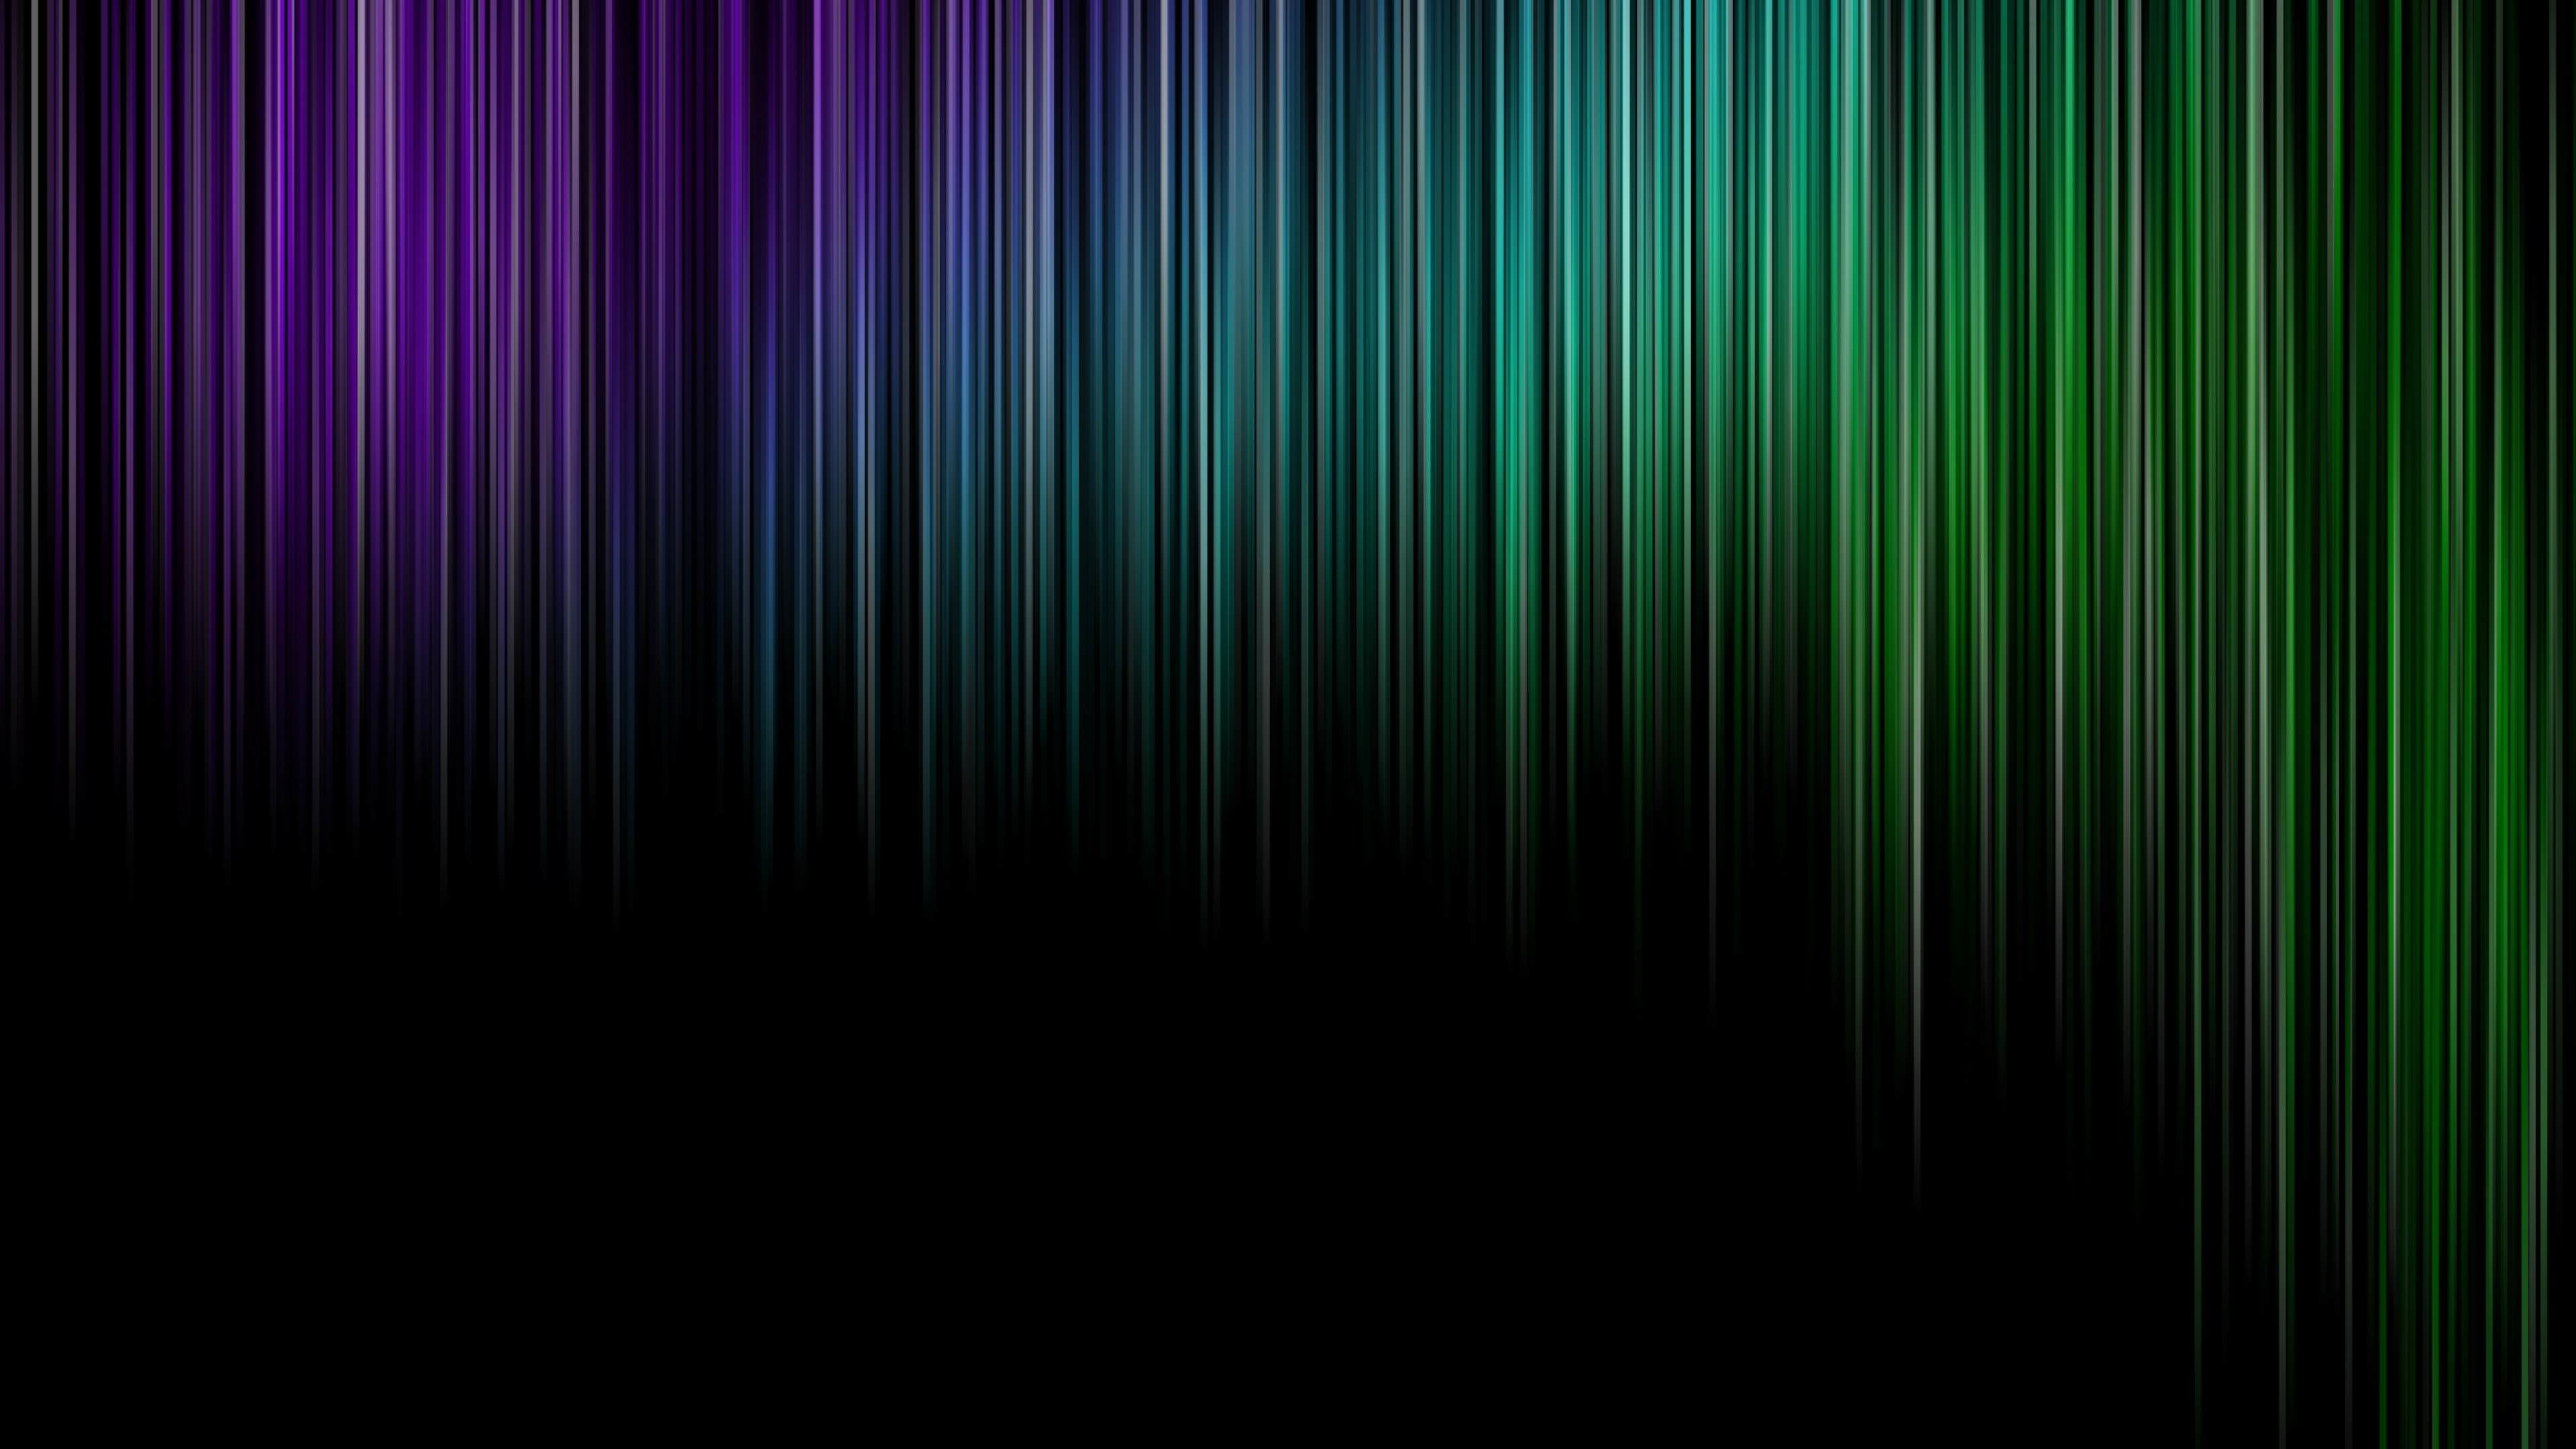 210+ Amazing Purple Backgrounds | Backgrounds | Design ...